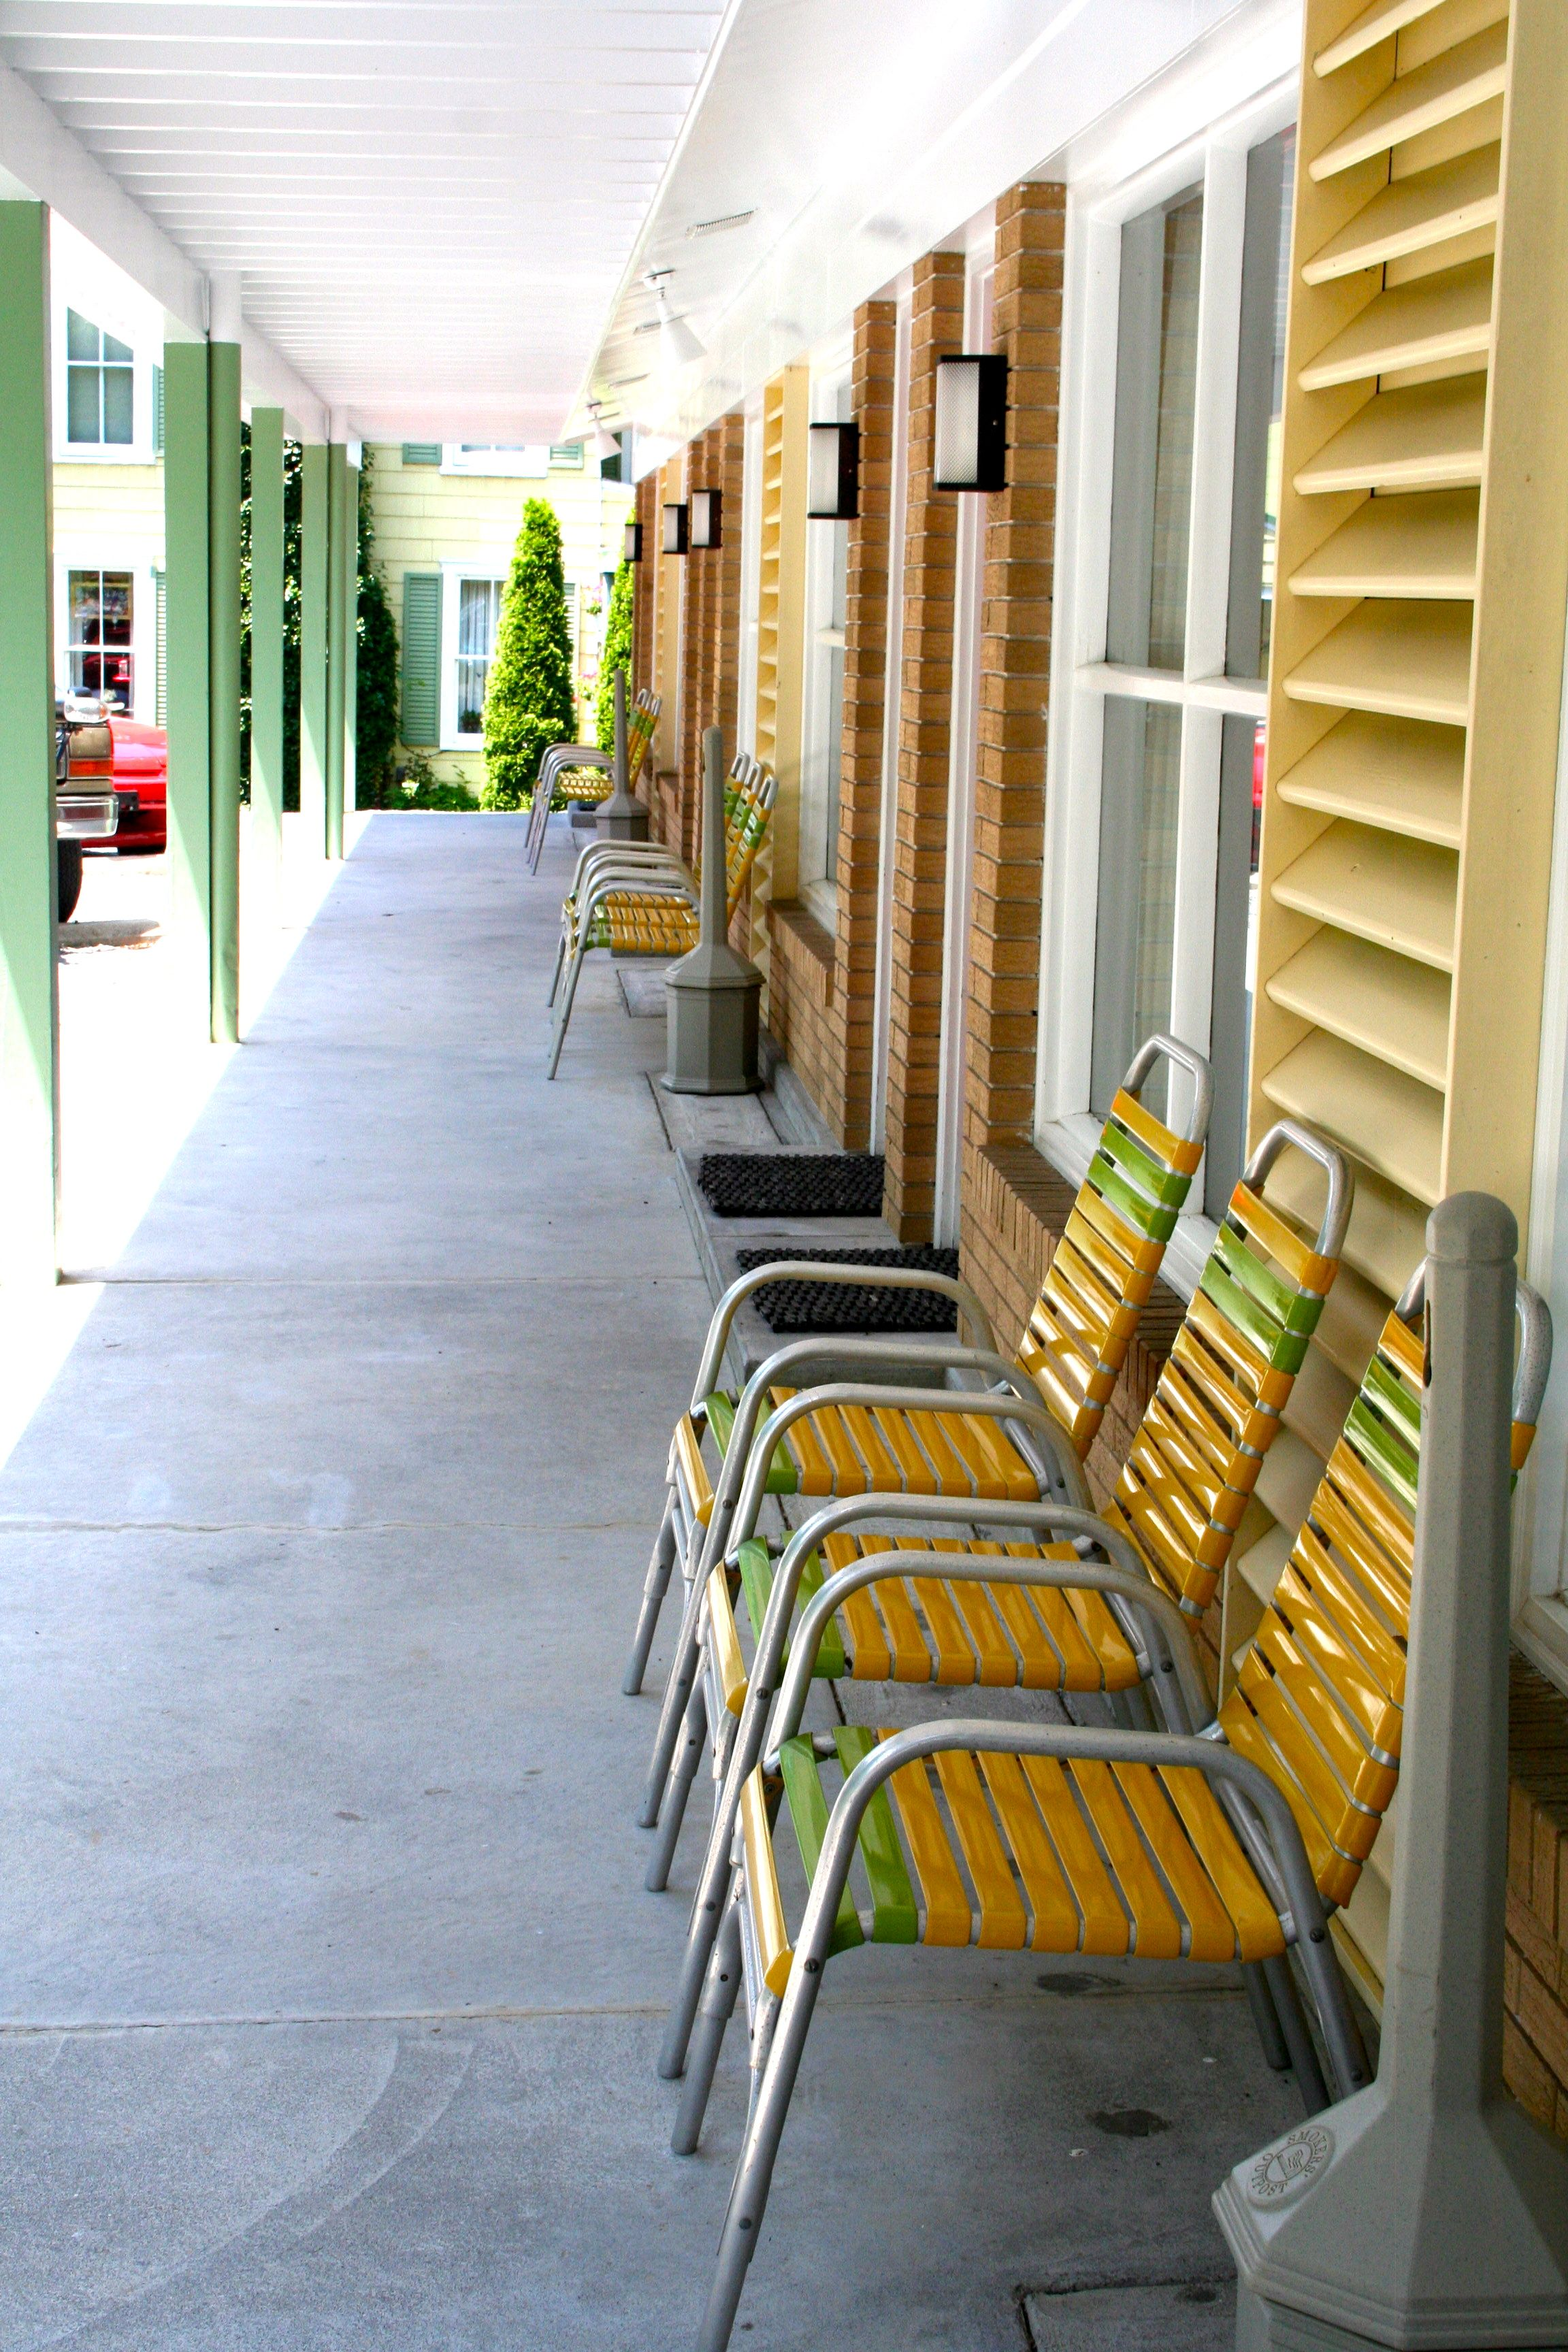 Patio furniture in front of rooms